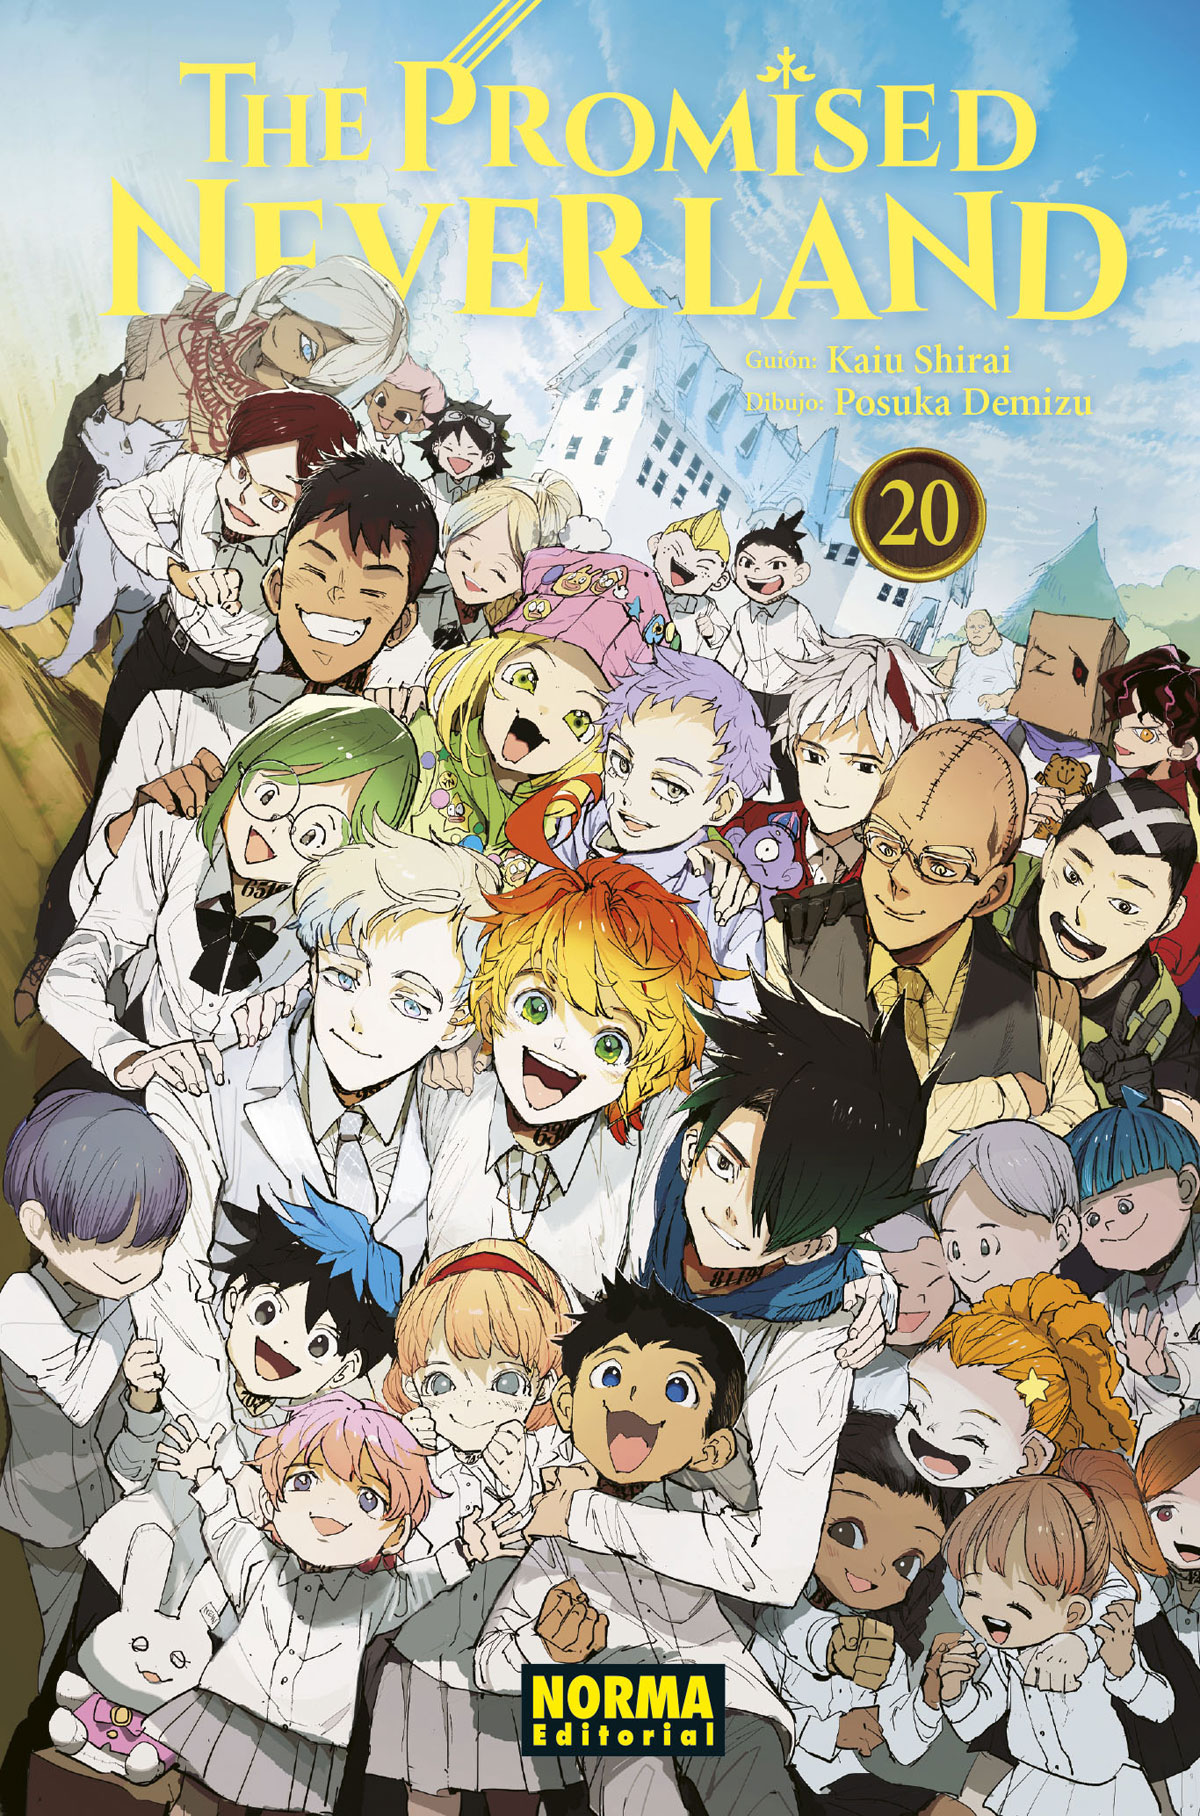 THE PROMISED NEVERLAND #20 (ÚLTIMO TOMO)